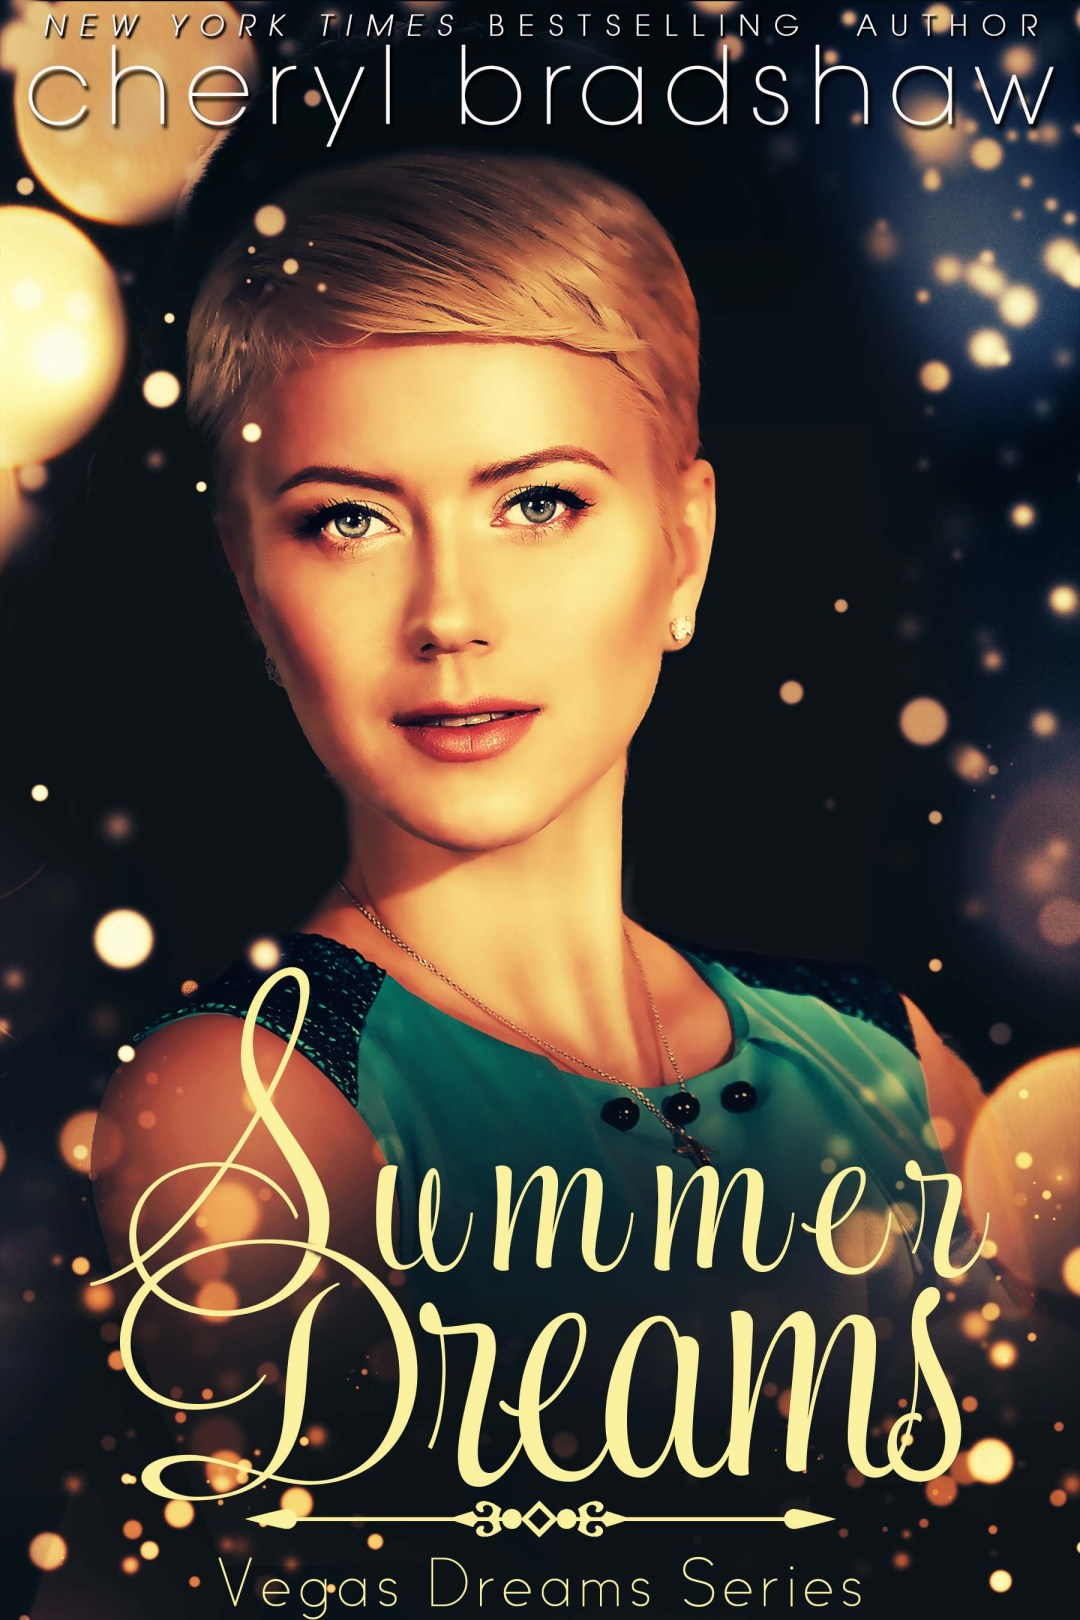 Summer Dreams by Cheryl Bradshaw New York Times bestselling author